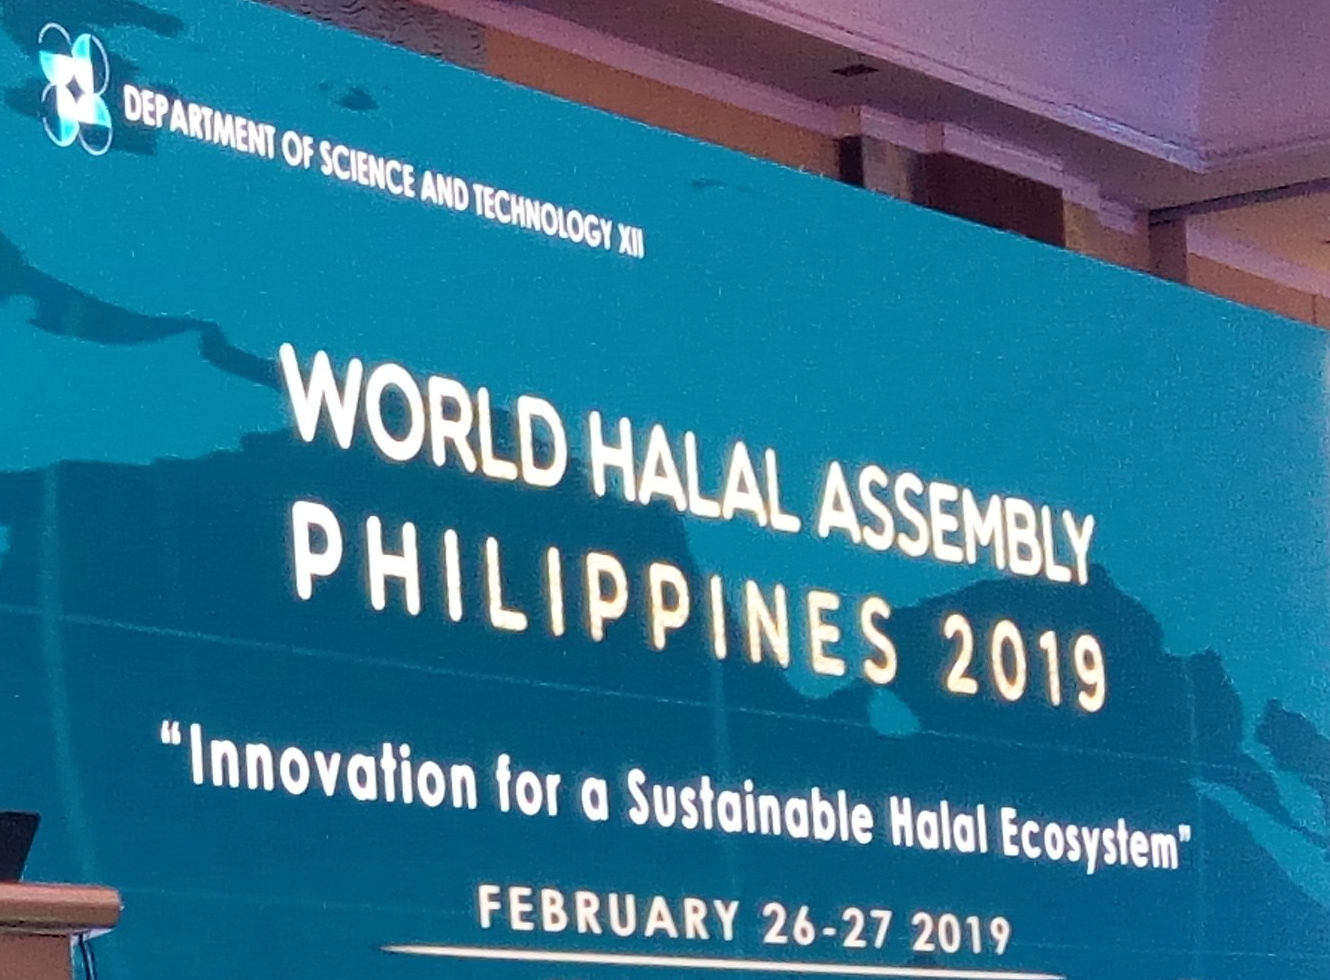 World Halal Assembly 2019 delegates endorse OIC-SMIIC